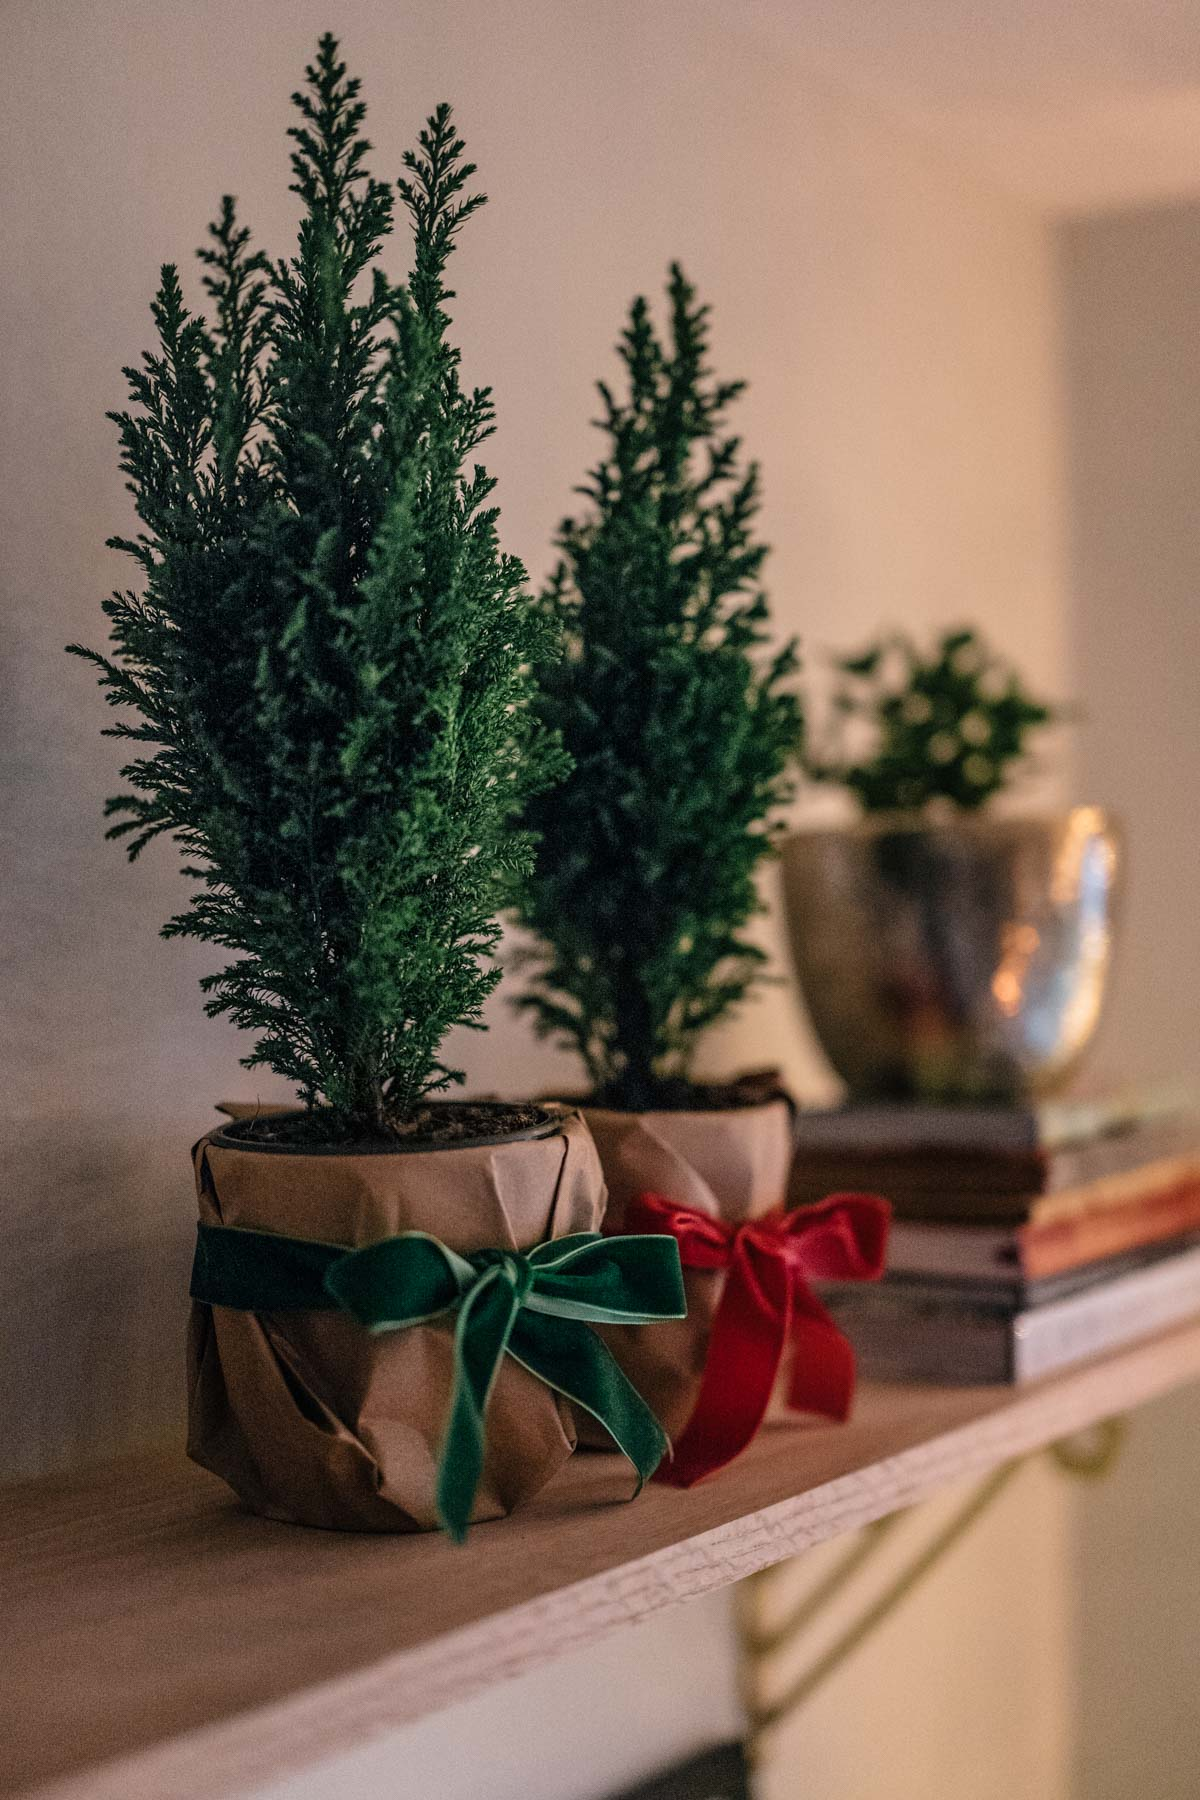 Jess Ann Kirby decorates her home this holiday season with DIY mini trees with velvet bows